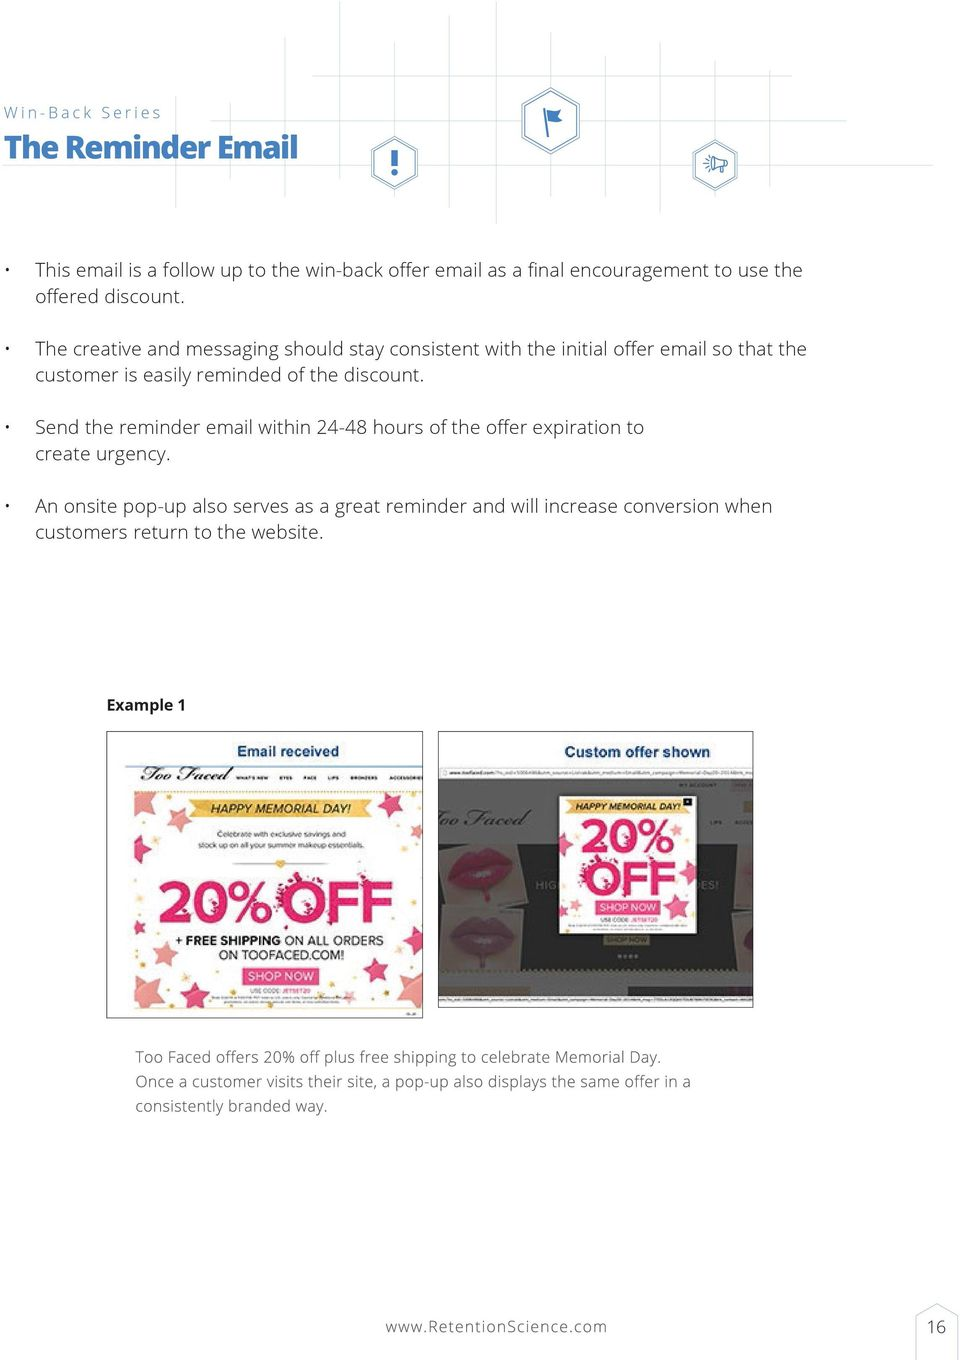 The creative and messaging should stay consistent with the initial offer email so that the customer is easily reminded of